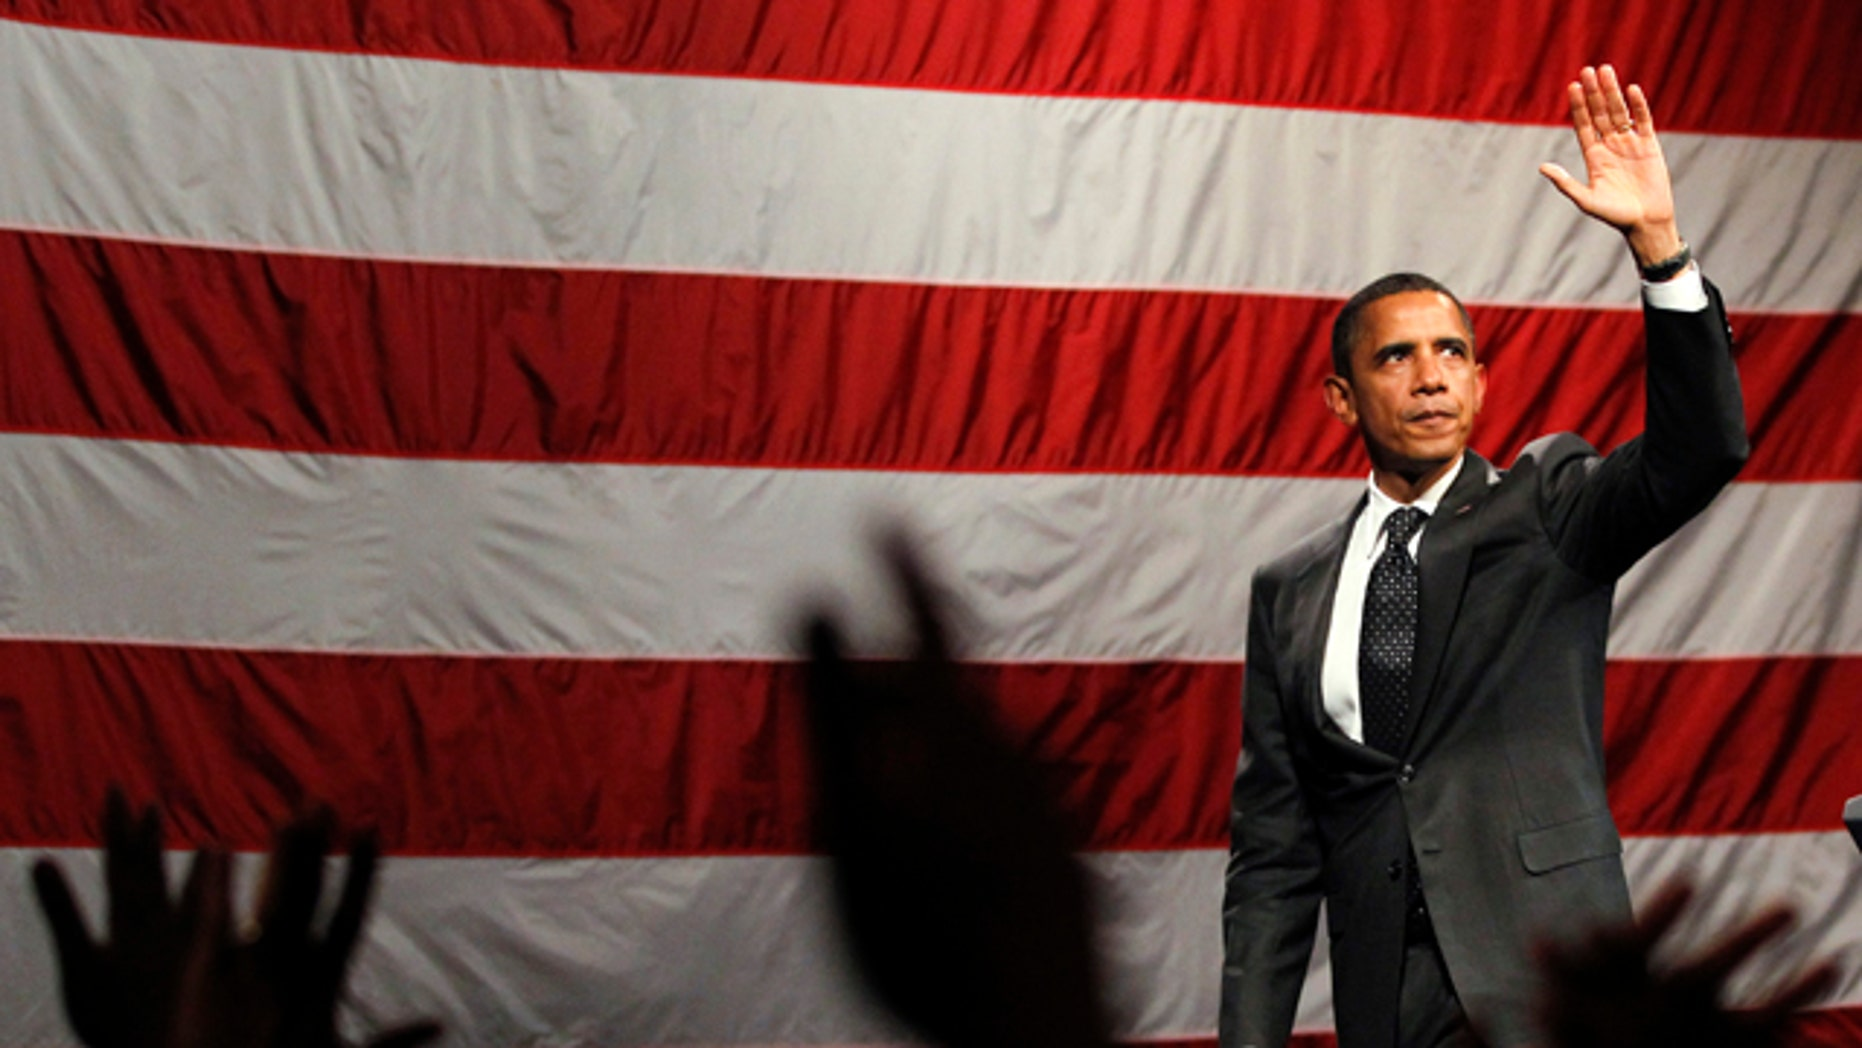 Sept. 26: President Barack Obama waves after a Democratic fundraiser at the House of Blues in West Hollywood, Calif.